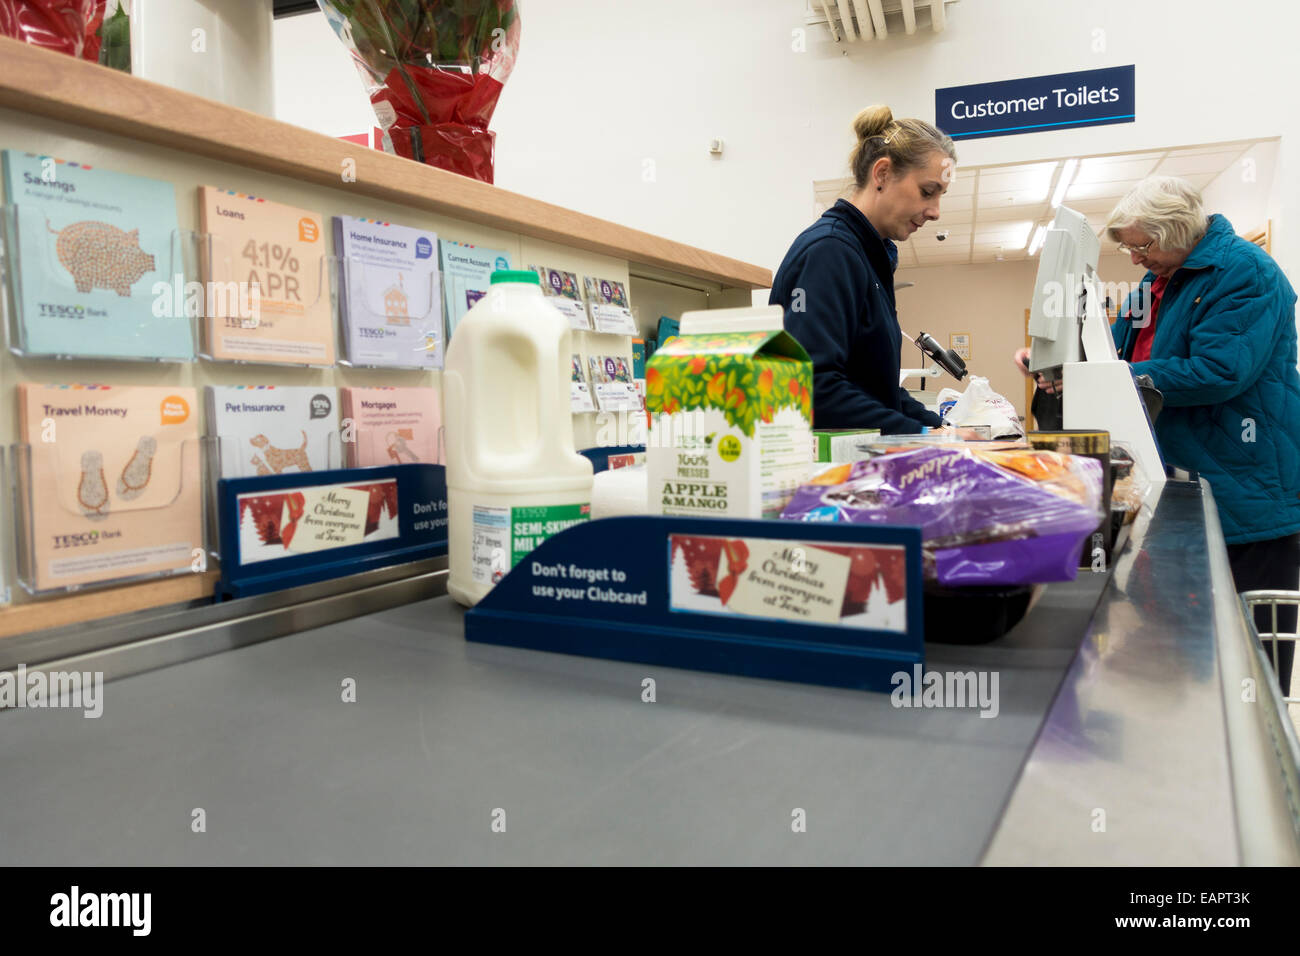 tesco checkout counter cashier handling customer shopping